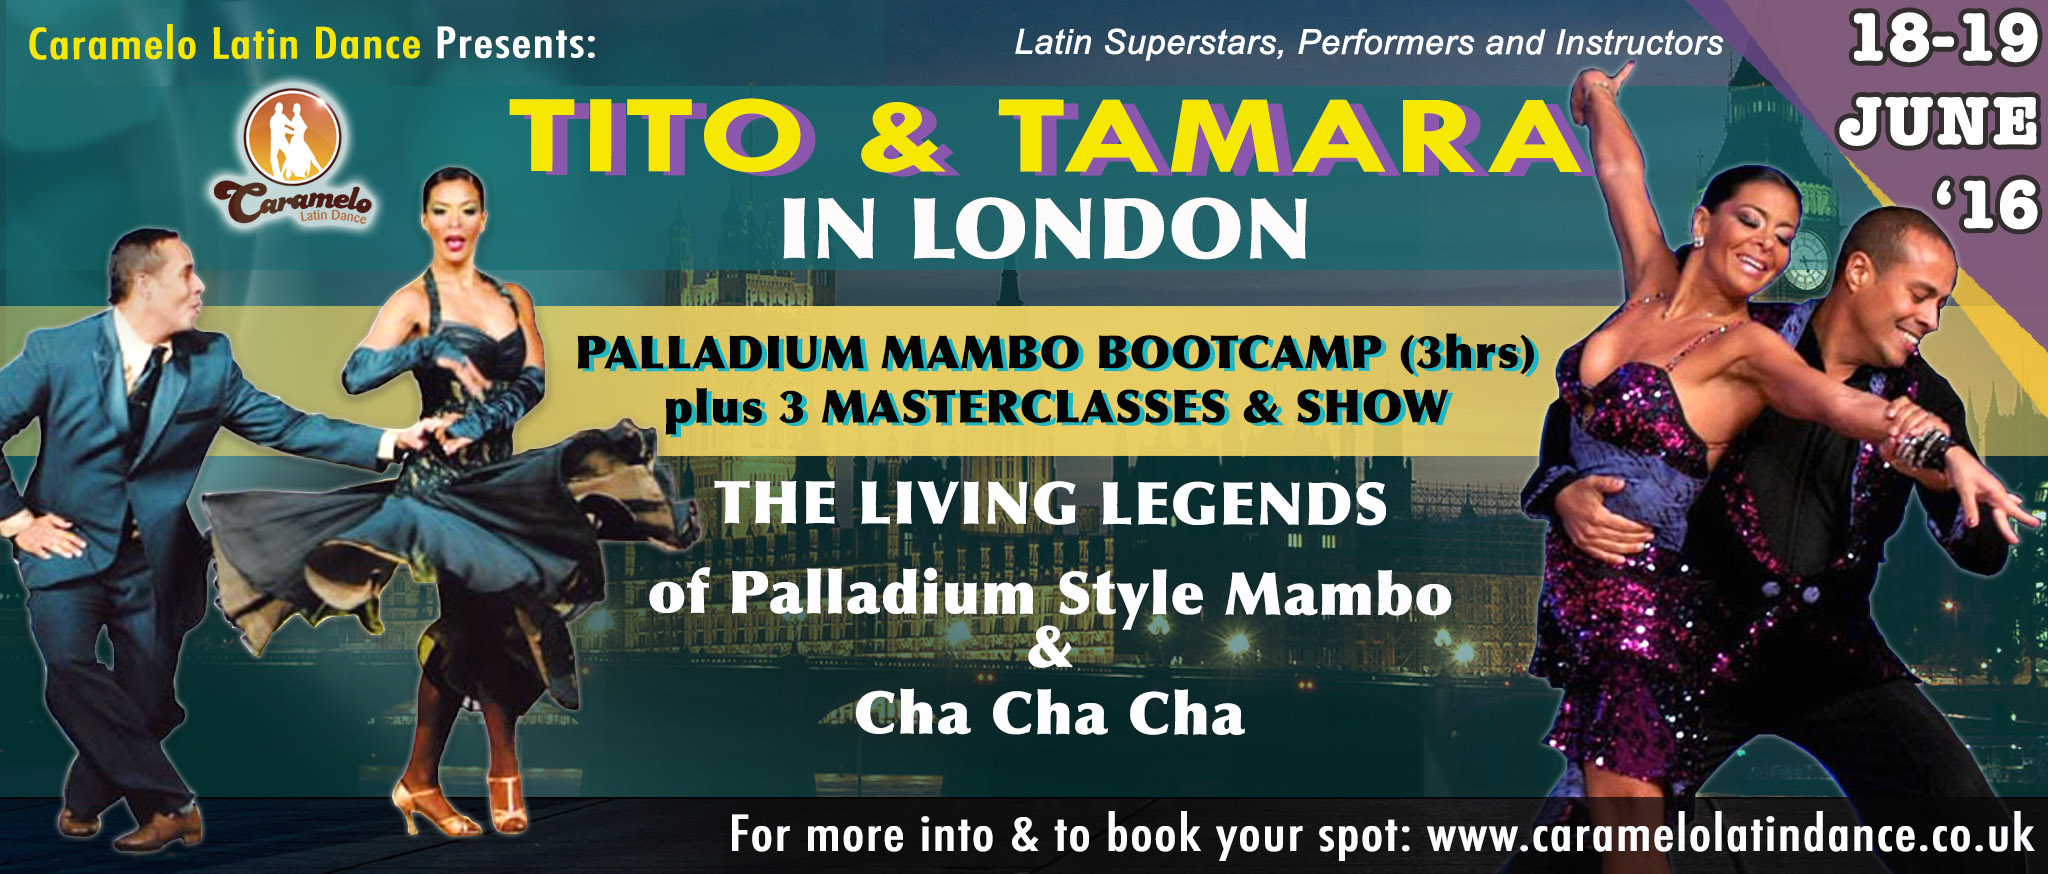 London Workshops with Tito & Tamara